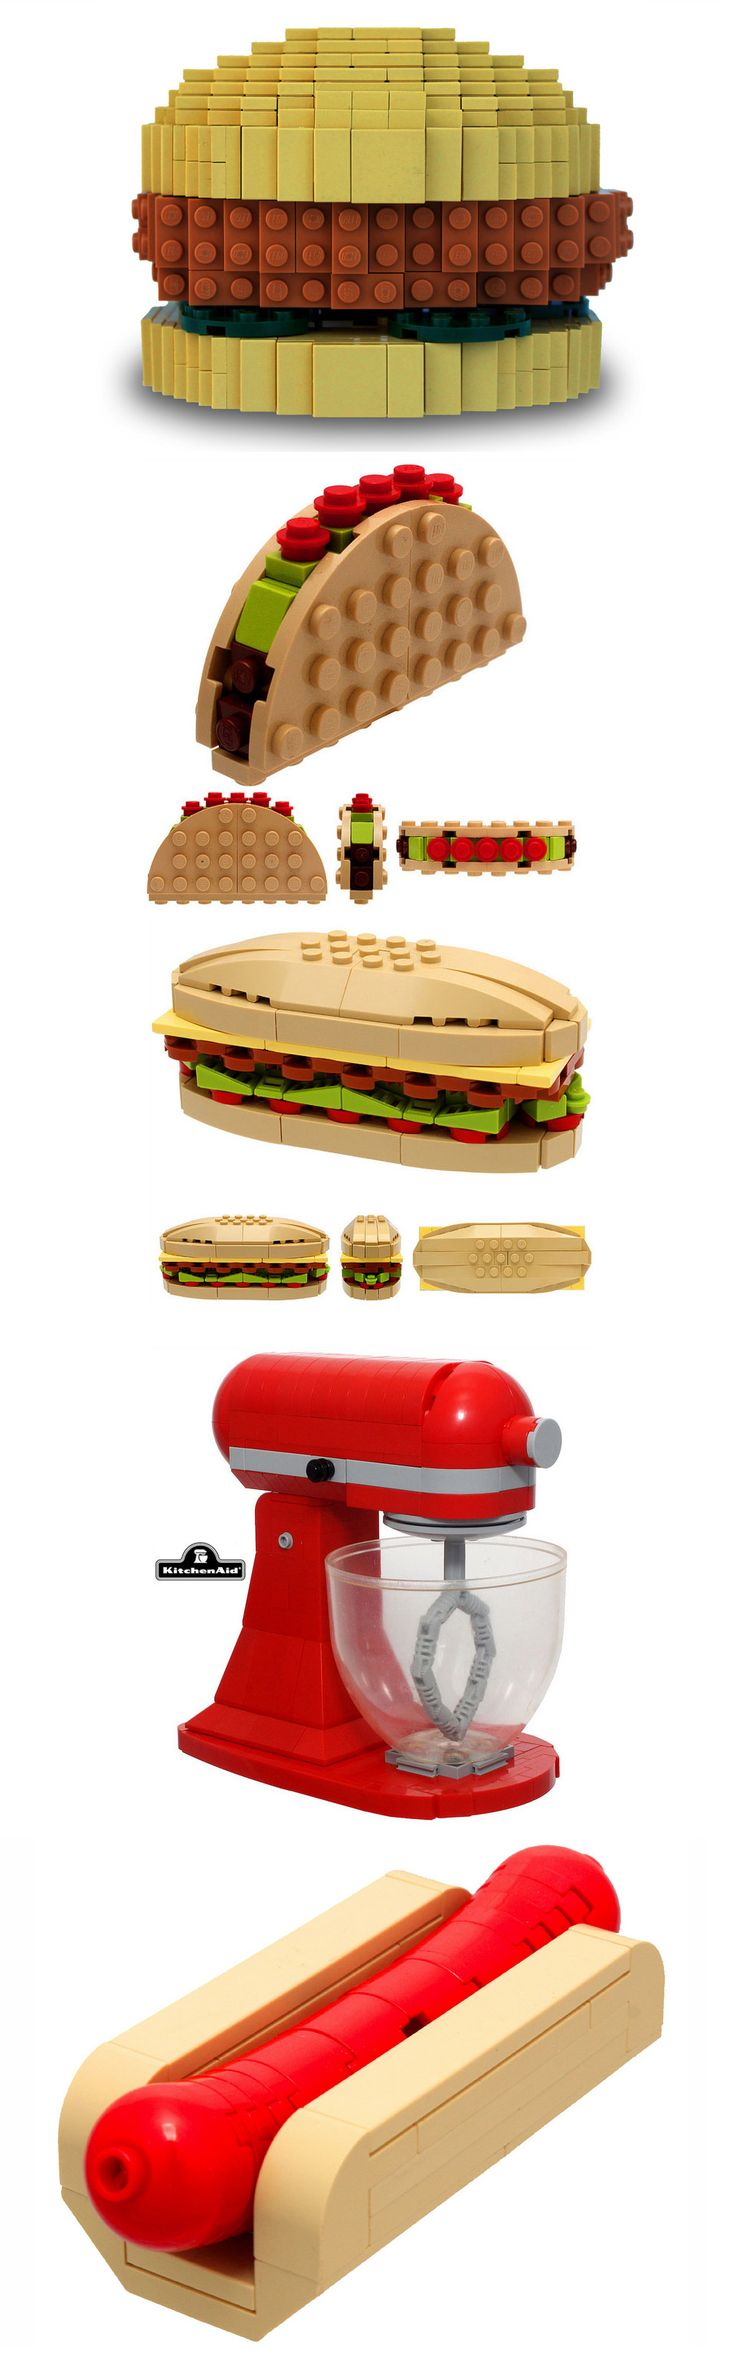 """Bruce Lowell """"lego's food""""                                                                                                                                                     More"""